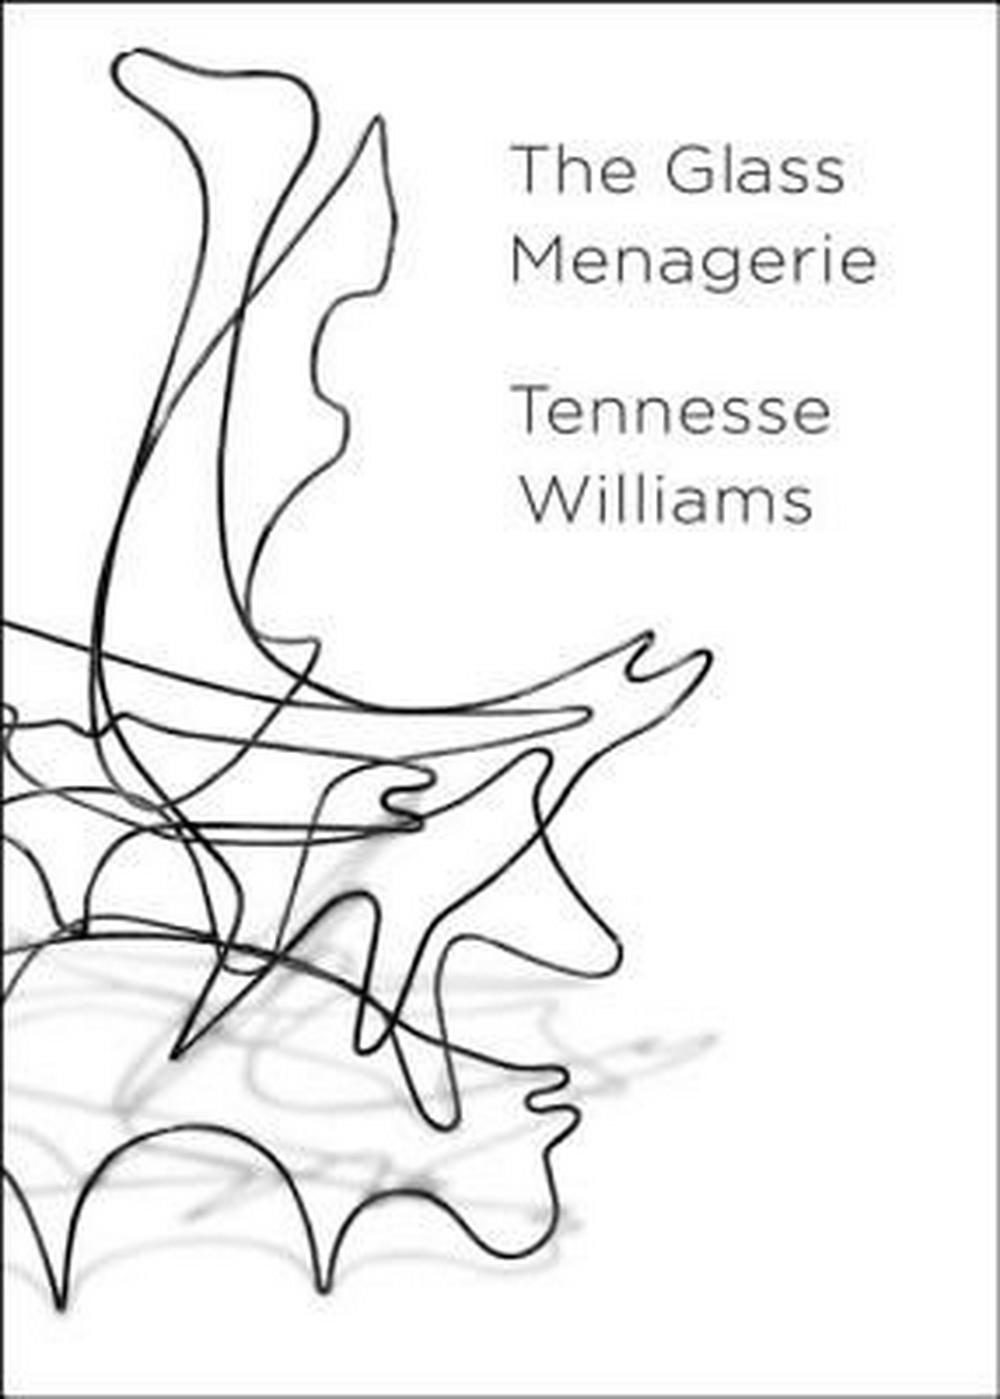 a comparison of the glass menagerie by tennessee williams and the ghosts by henrik ibsen Ghosts by henrik ibsen (00, 04) the glass menagerie by tennessee williams (71, 90, 94, 97, 99, 02, 08, 09, 10, 12) the god of small things by arundhati roy (10, 11, 13.